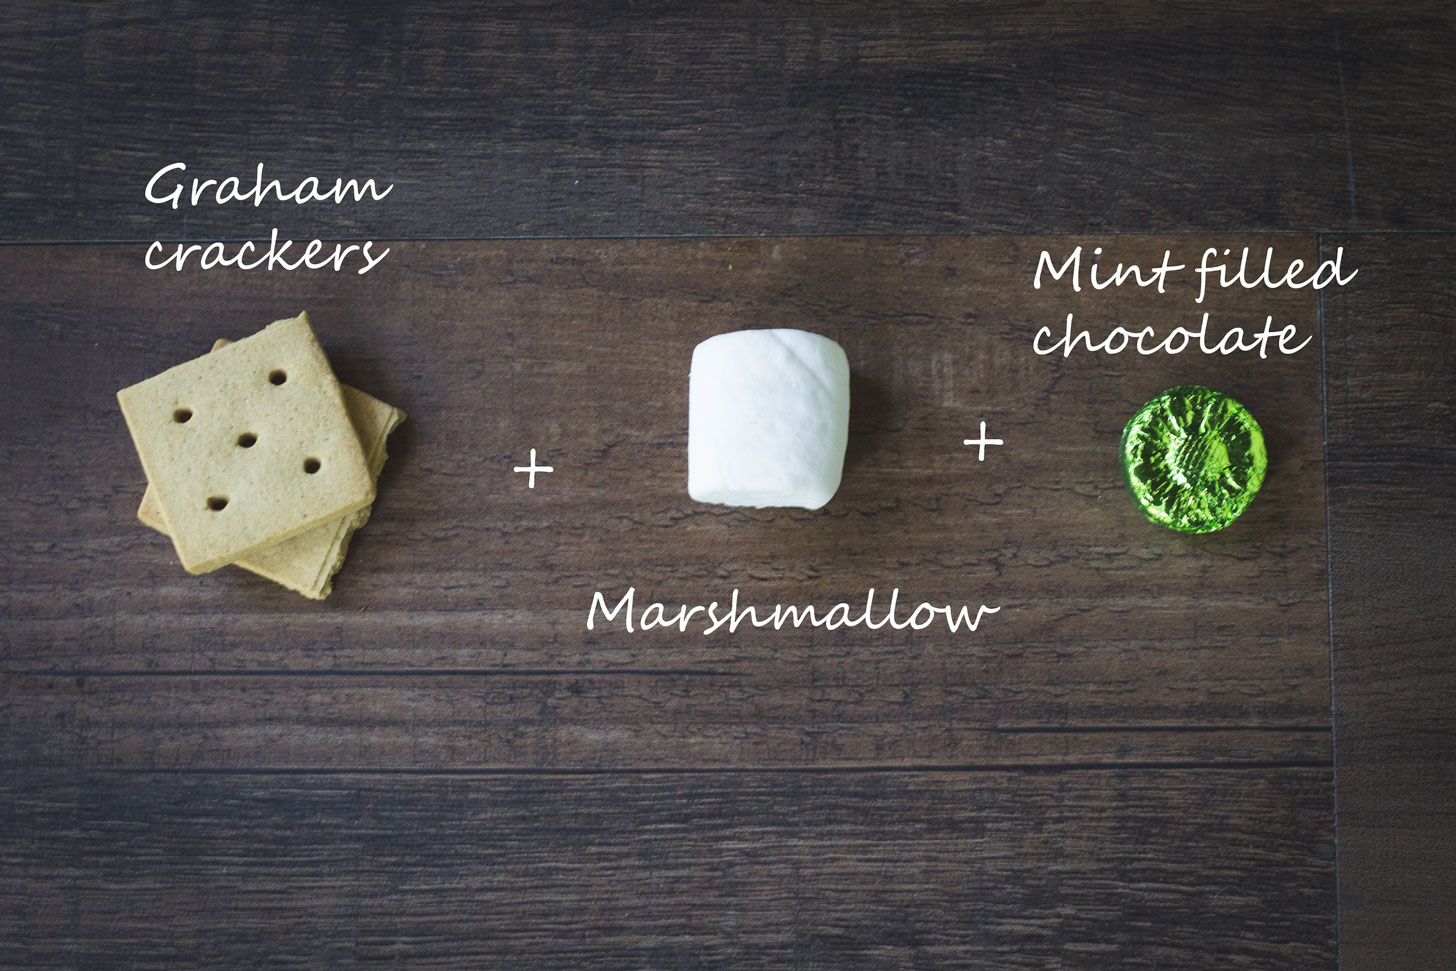 Graham crackers, marshmallow, and mint chocolate.